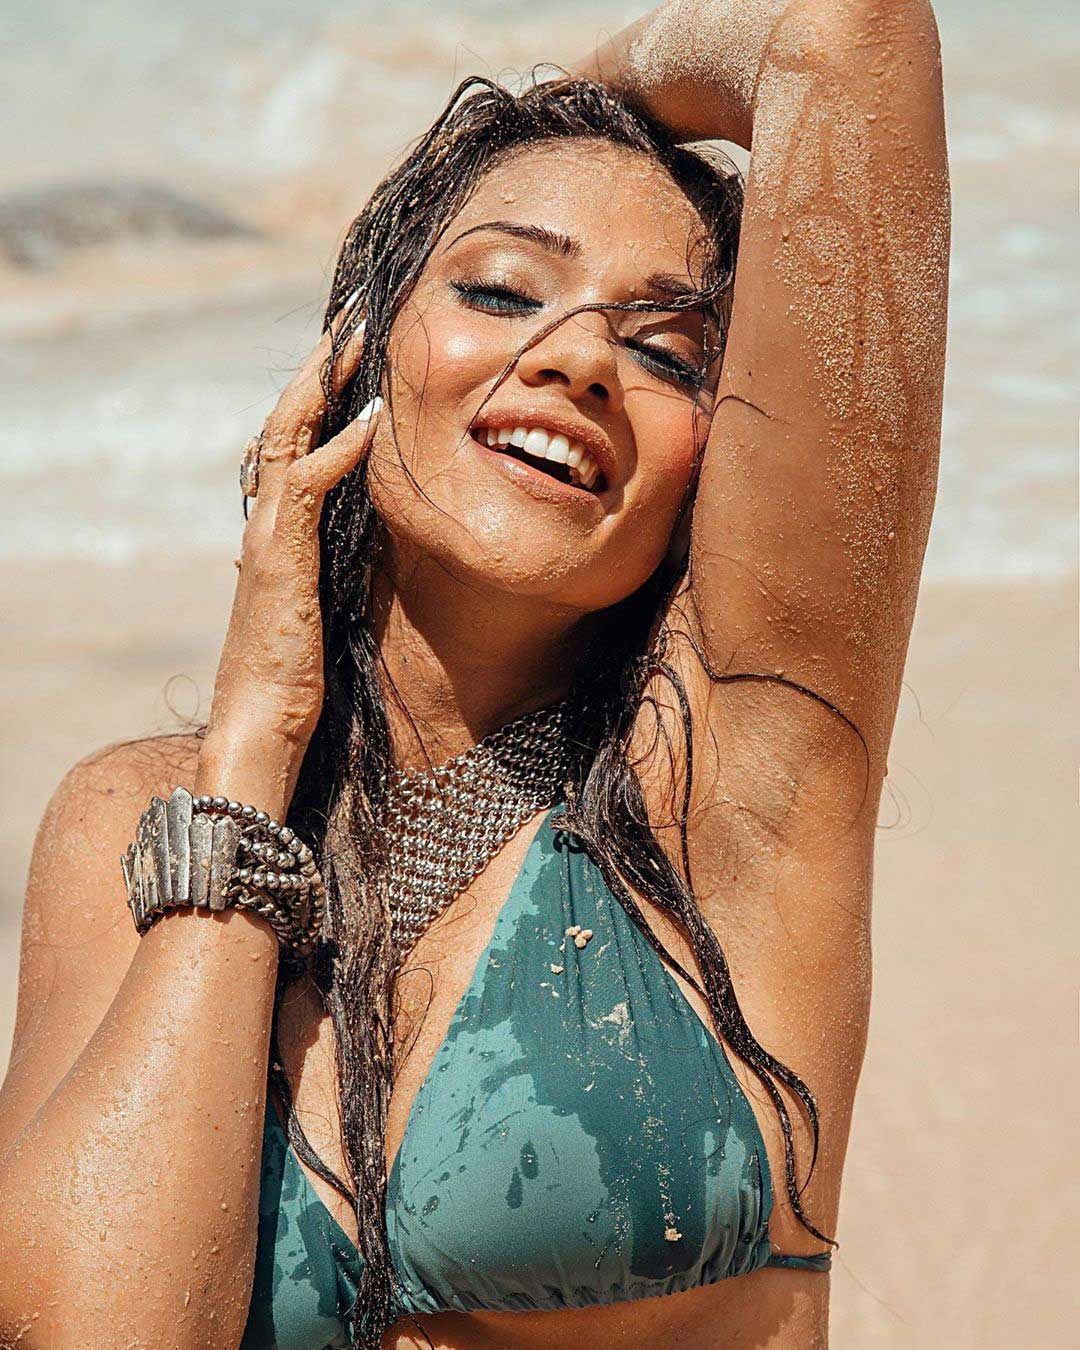 Sexy Megha Gupta Hot in Bikini flaunting her armpits